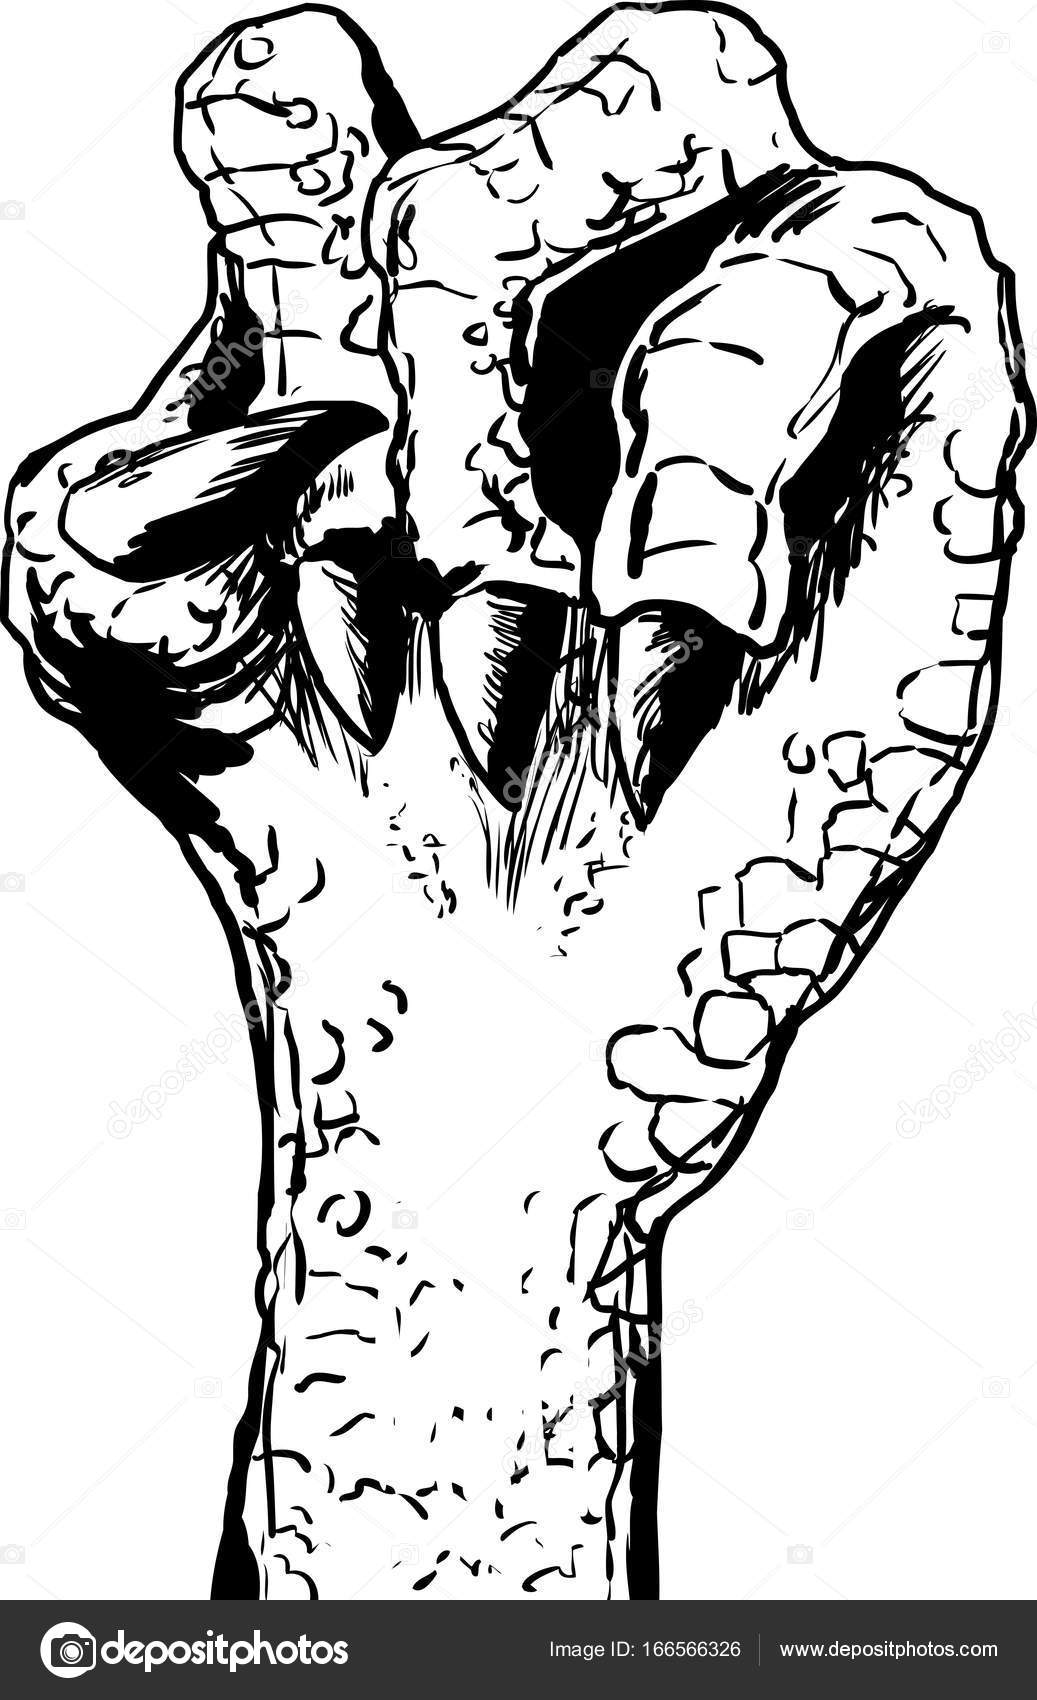 1037x1700 Lizard Clenched Fist Outline Stock Vector Theblackrhino